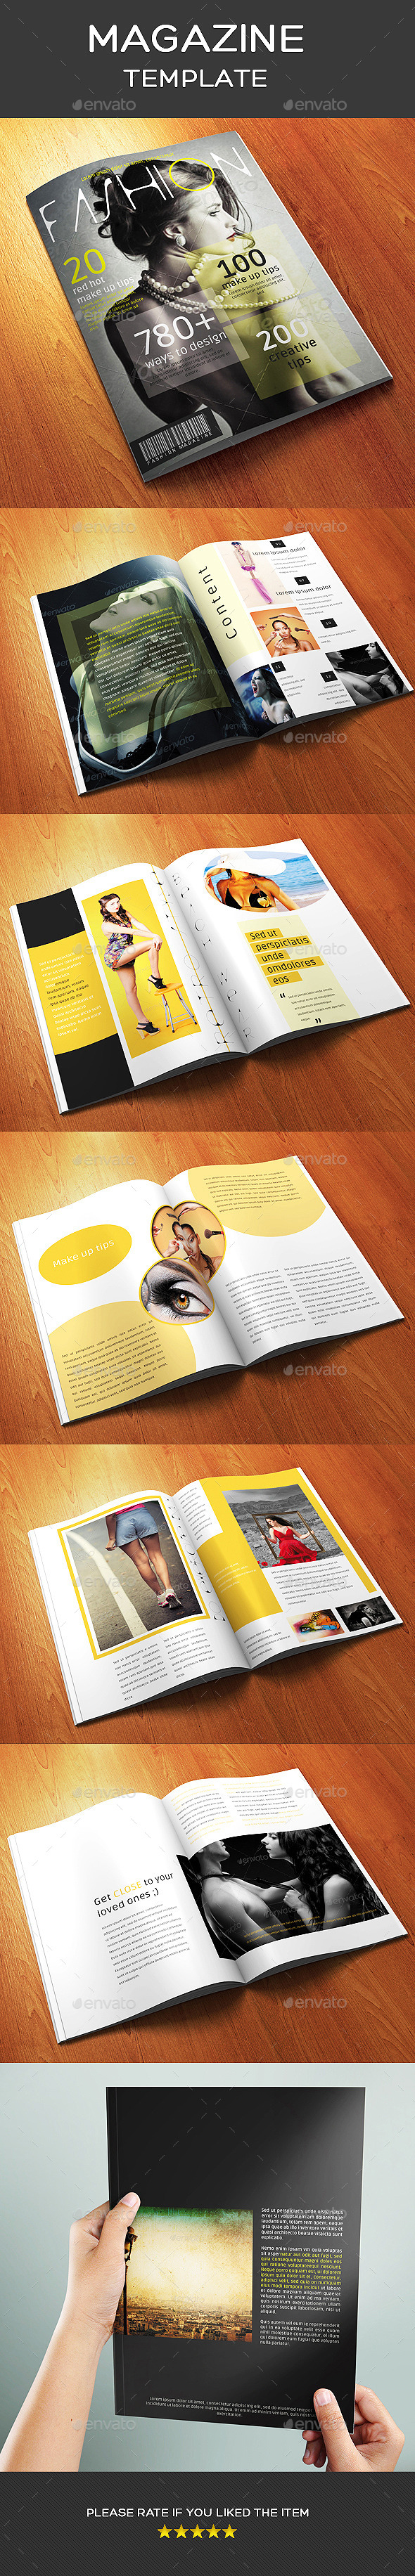 12 Pages A4 Size Fashion Magazine Template - Magazines Print Templates